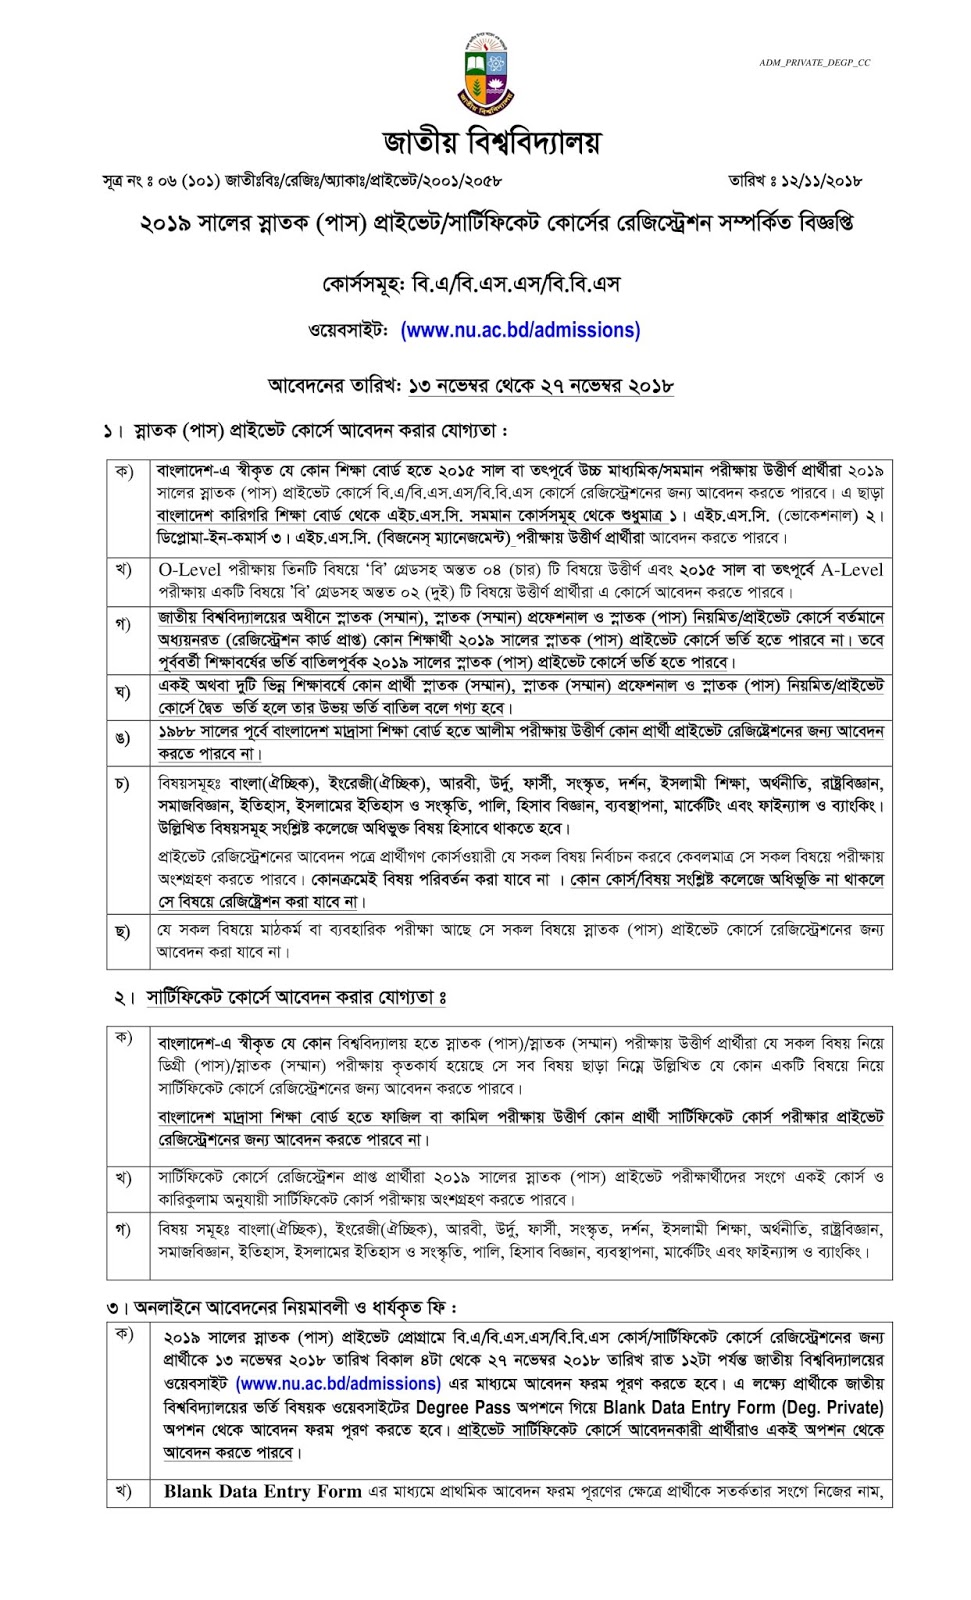 Circular for 1st year degree (pass) private/certificate course registration 2018-2019